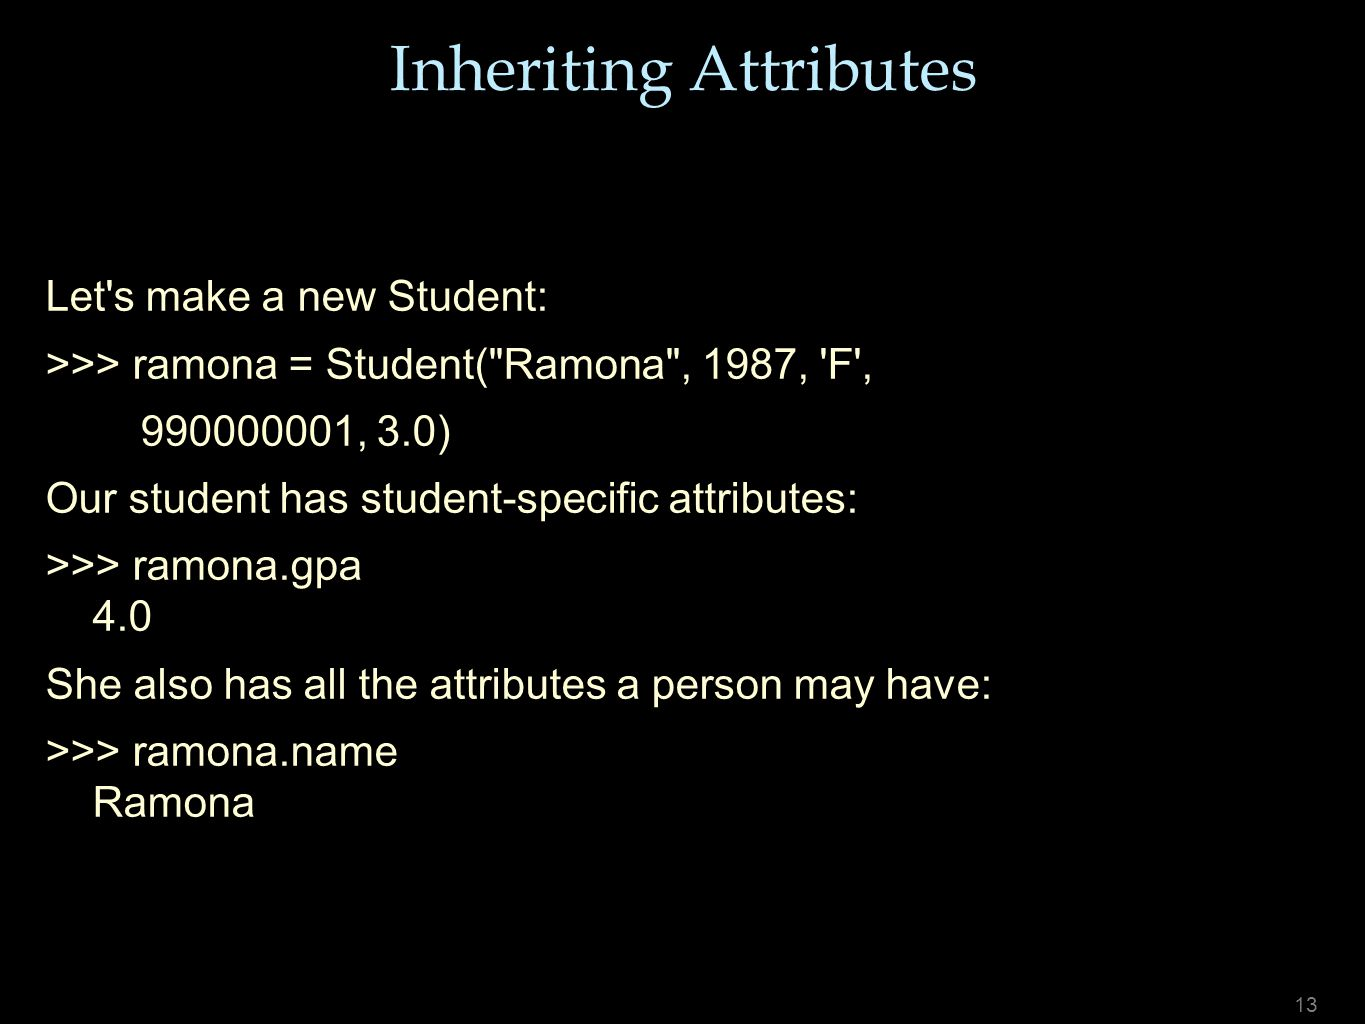 13 Inheriting Attributes Let s make a new Student: >>> ramona = Student( Ramona , 1987, F , 990000001, 3.0) Our student has student-specific attributes: >>> ramona.gpa 4.0 She also has all the attributes a person may have: >>> ramona.name Ramona